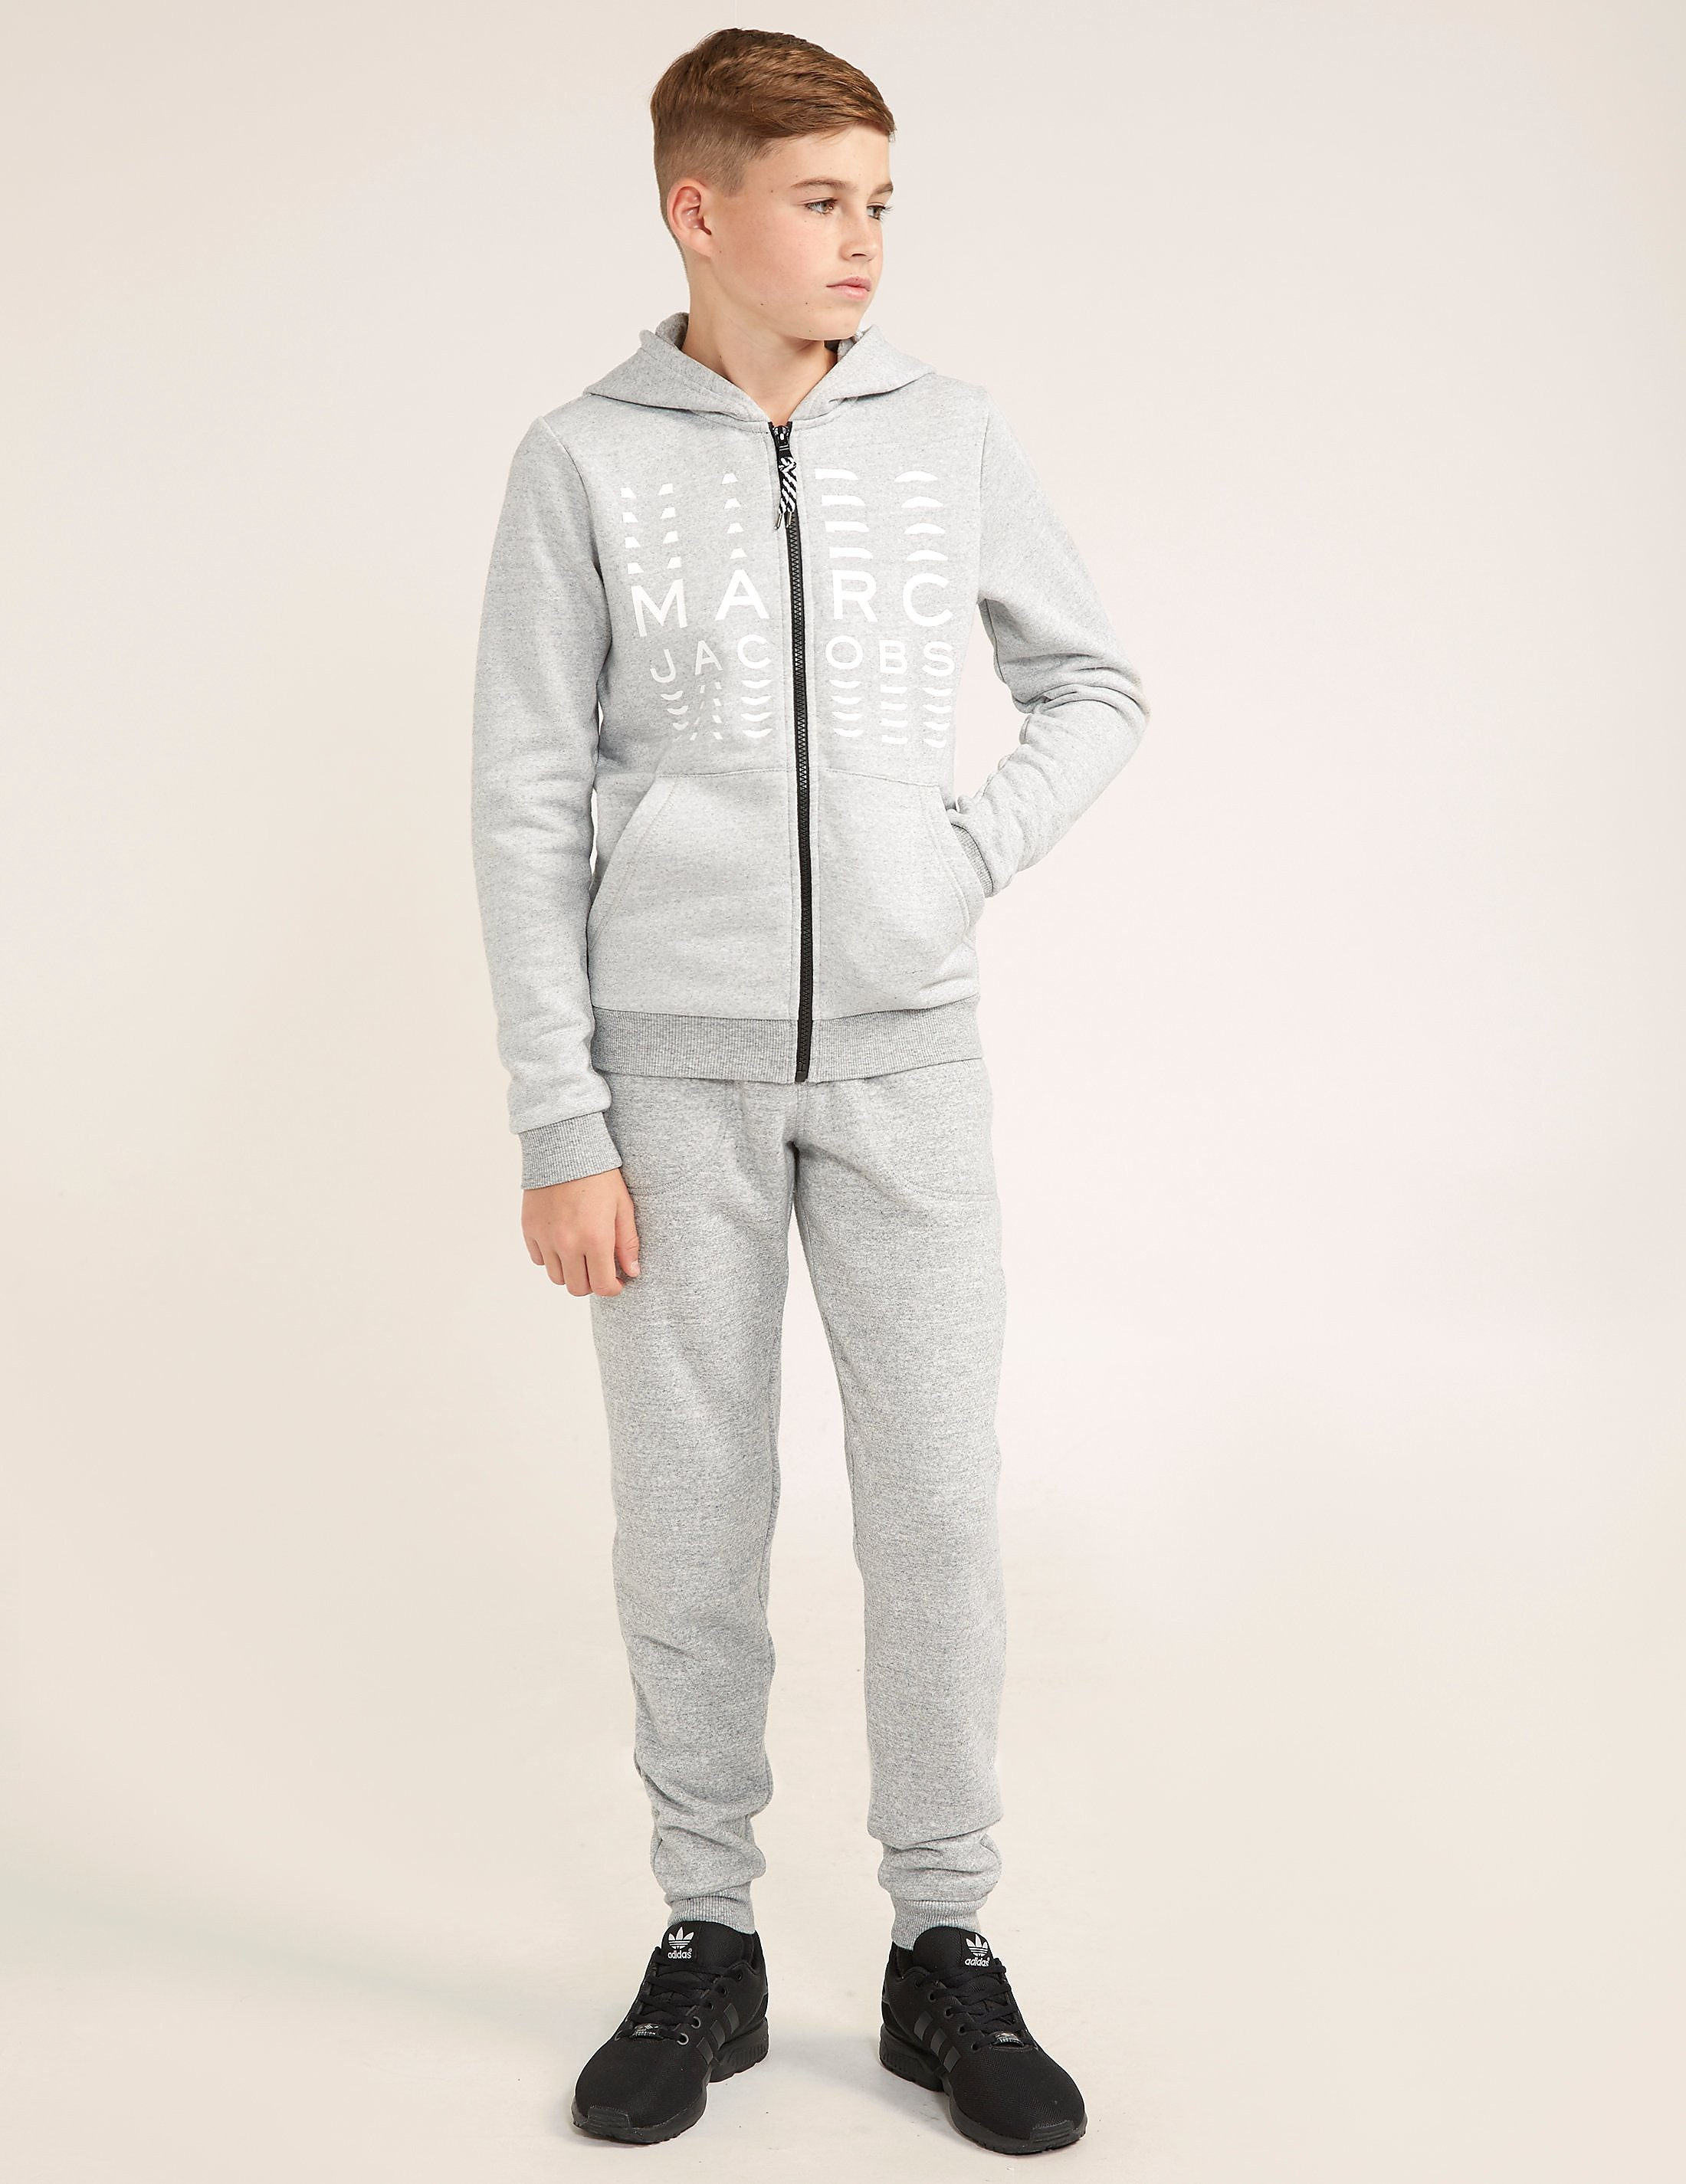 Little Marc Jacobs Cuffed Track Pants